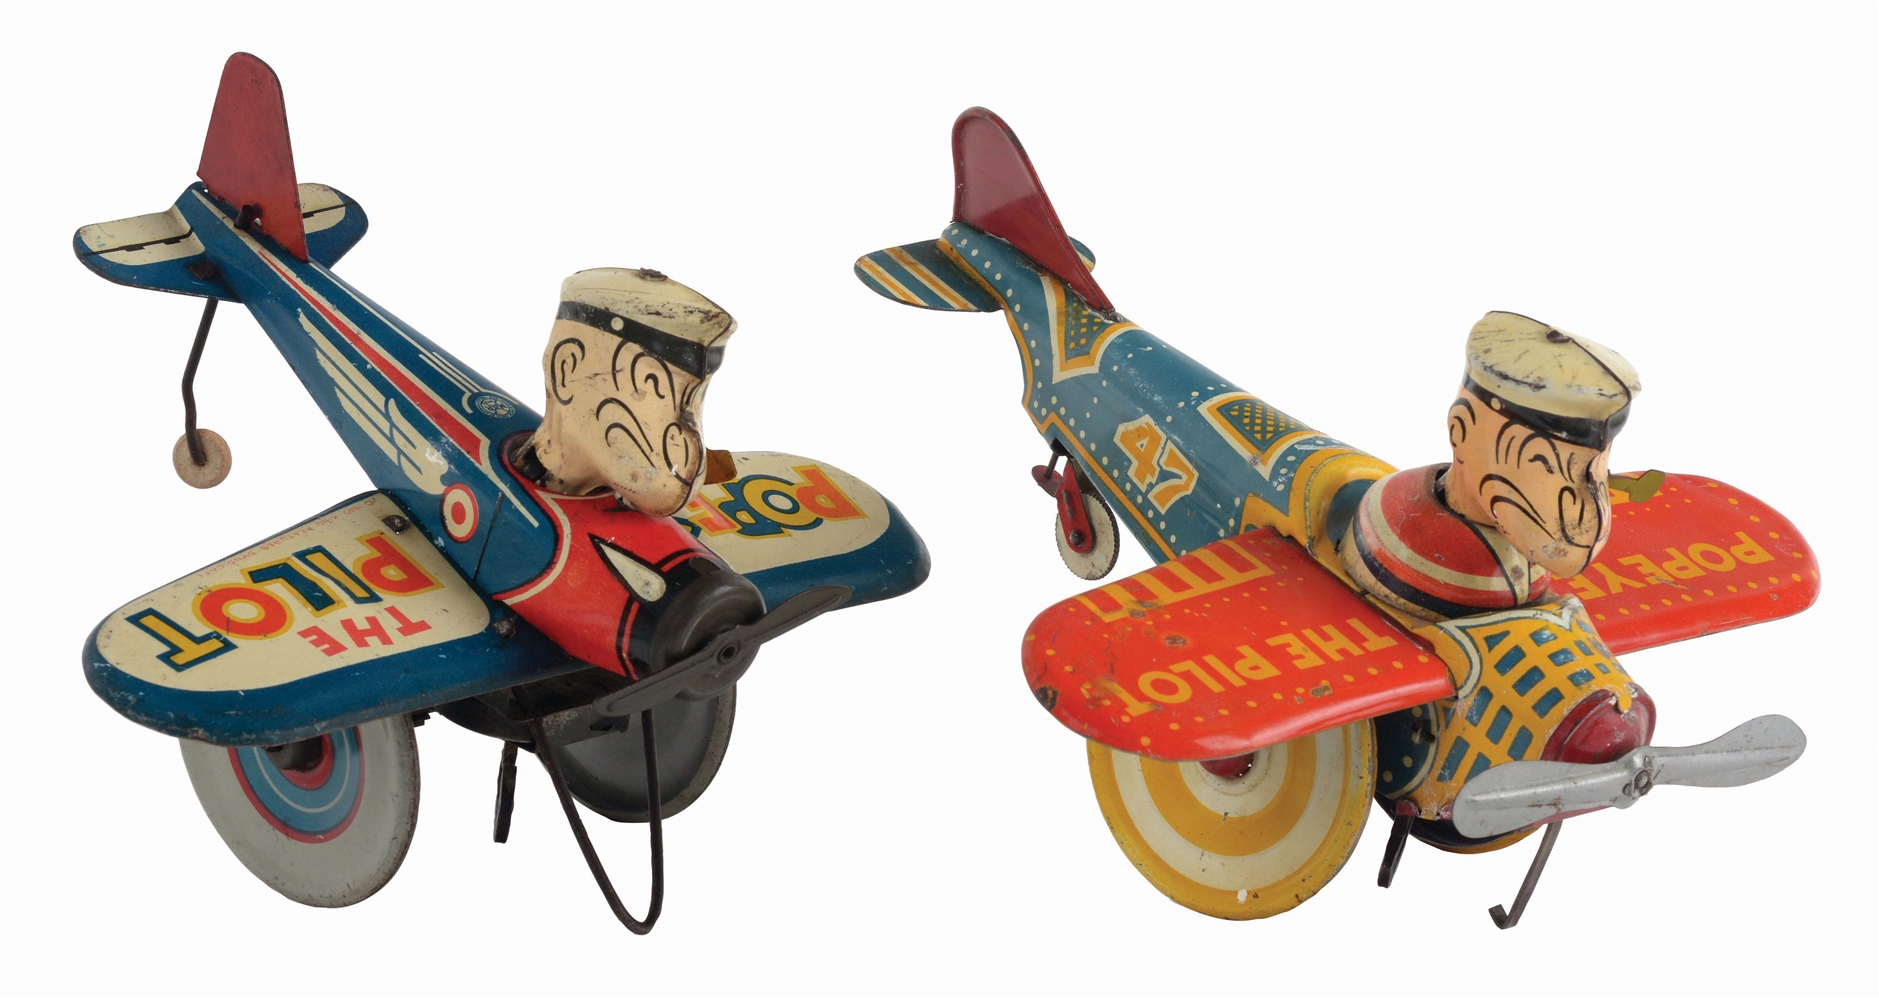 LOT OF 2: MARX TIN-LITHO WIND-UP POPEYE AIRPLANE TOYS.